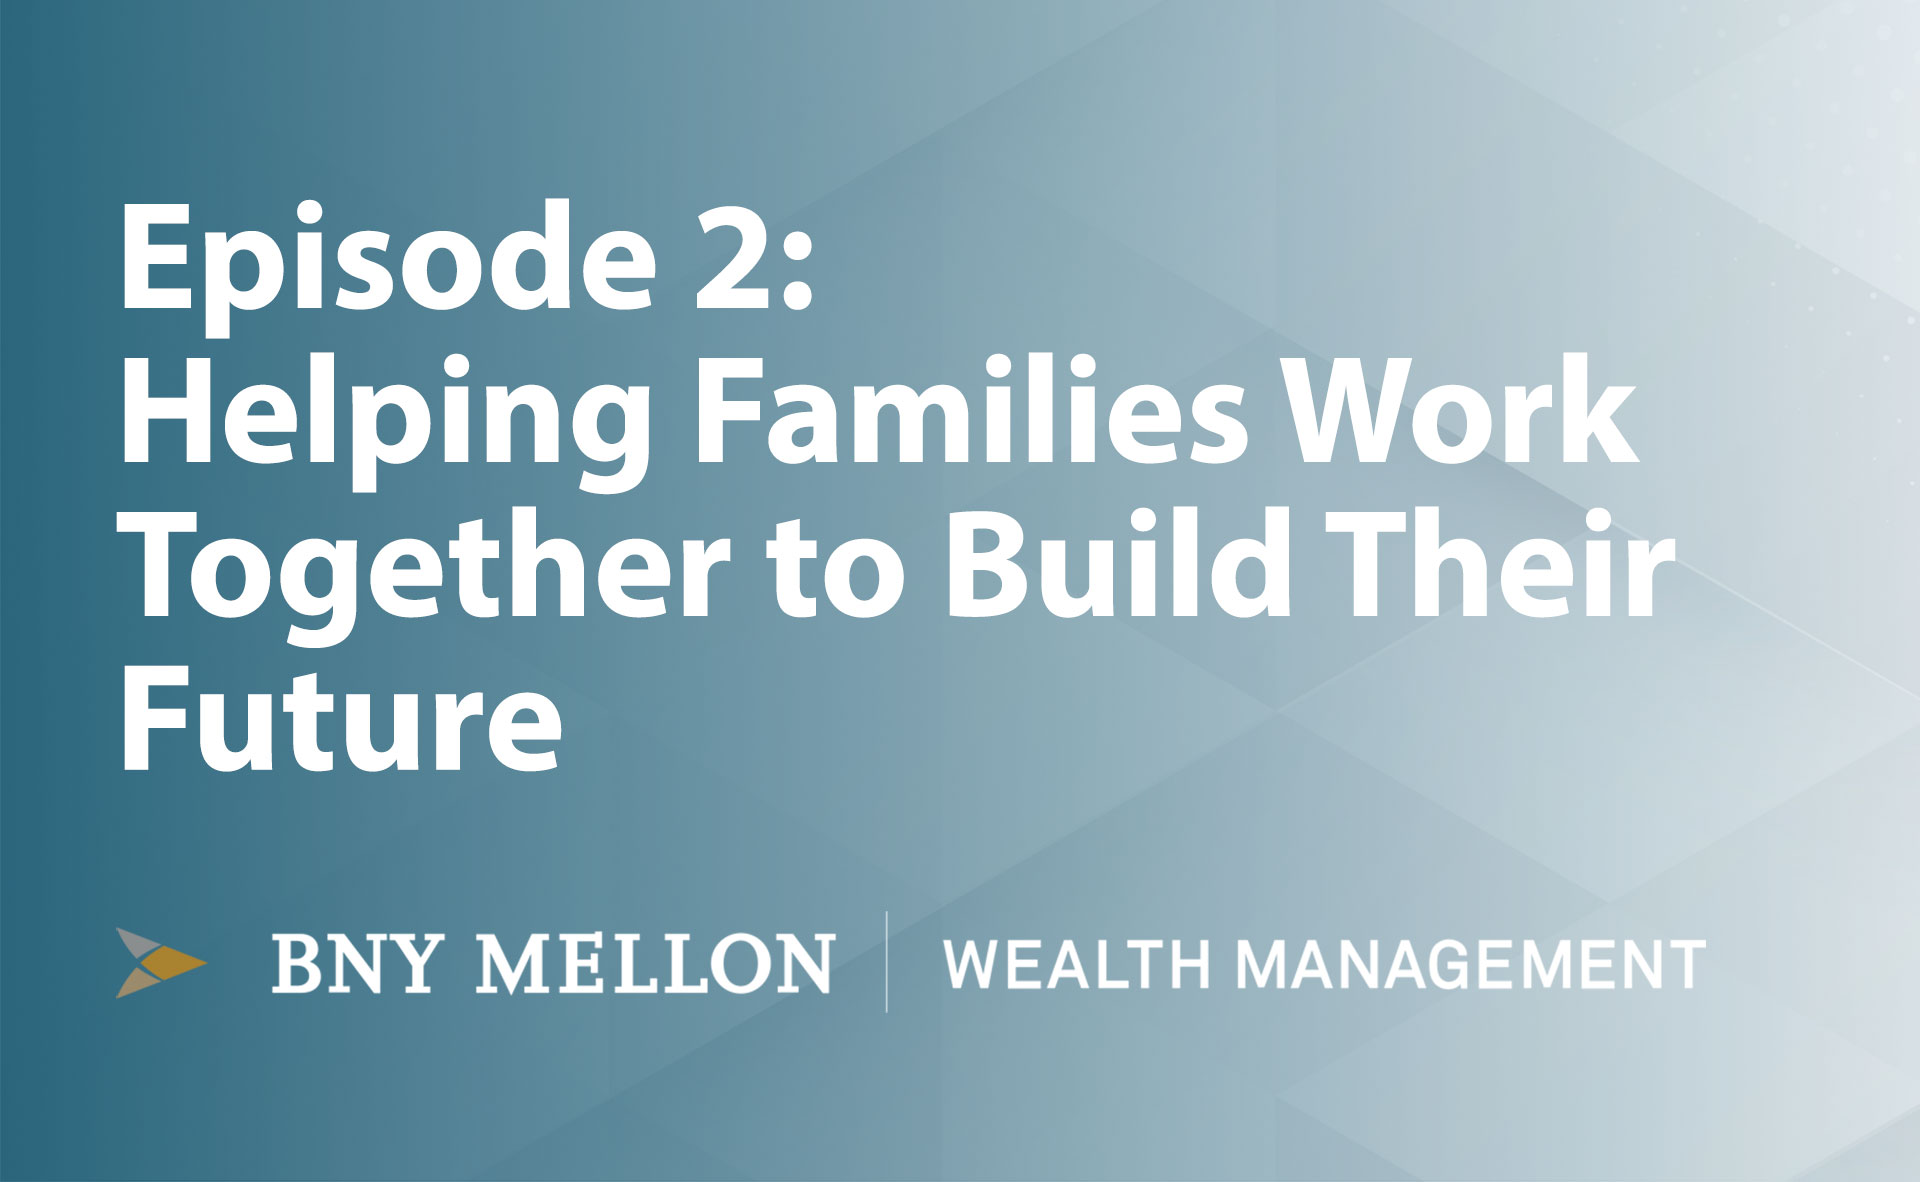 Video:Helping Families Work Together to Build Their Future